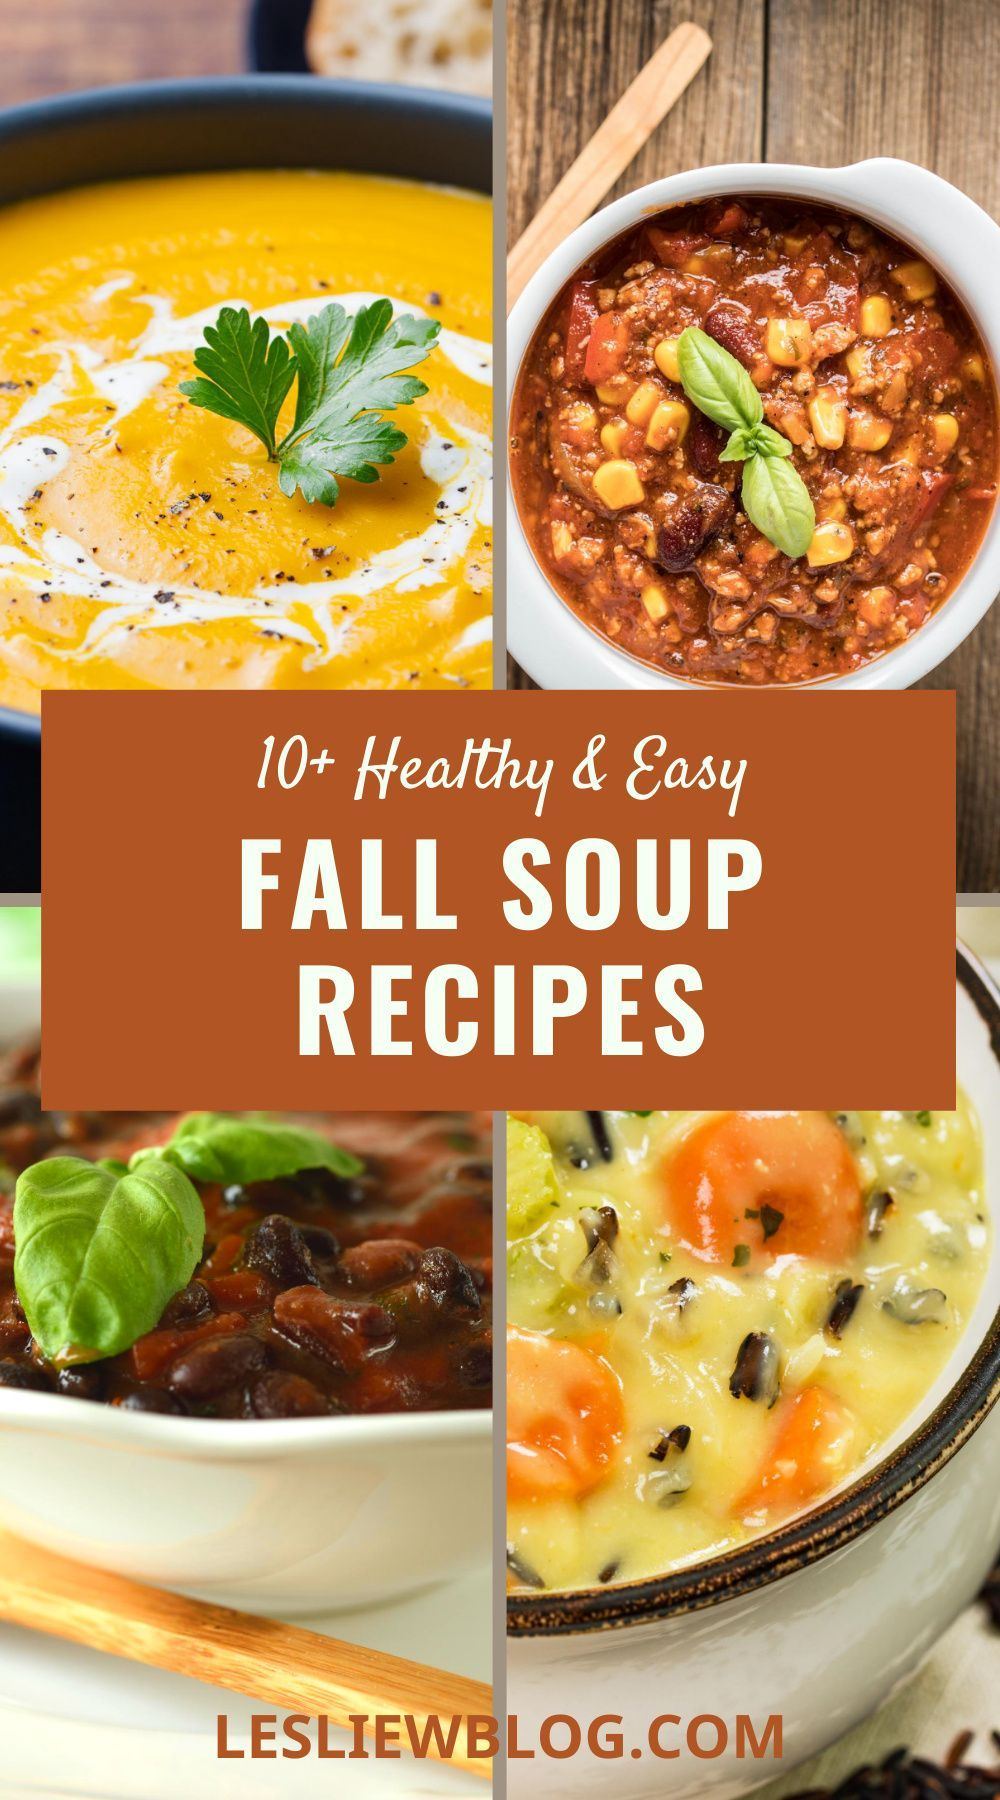 10 Fall Soup Recipes That Are Easy Healthy Delicious In 2020 Fall Soup Recipes Fall Soups Autumn Stew Recipes